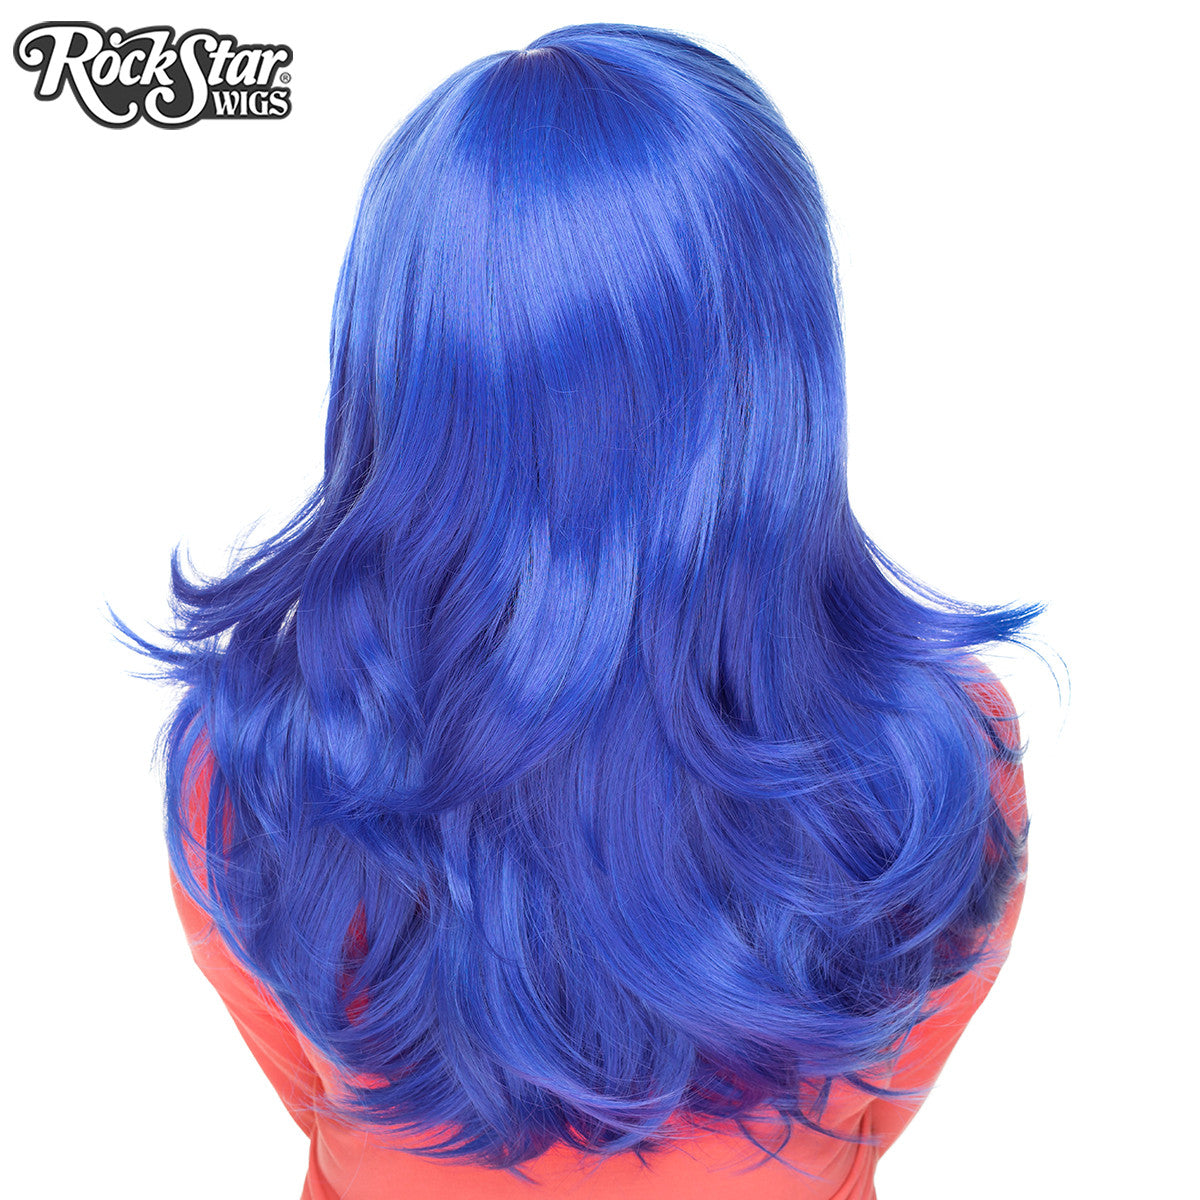 "RockStar Wigs® <br> Hologram 22"" - Royal Blue Mix - 00729"